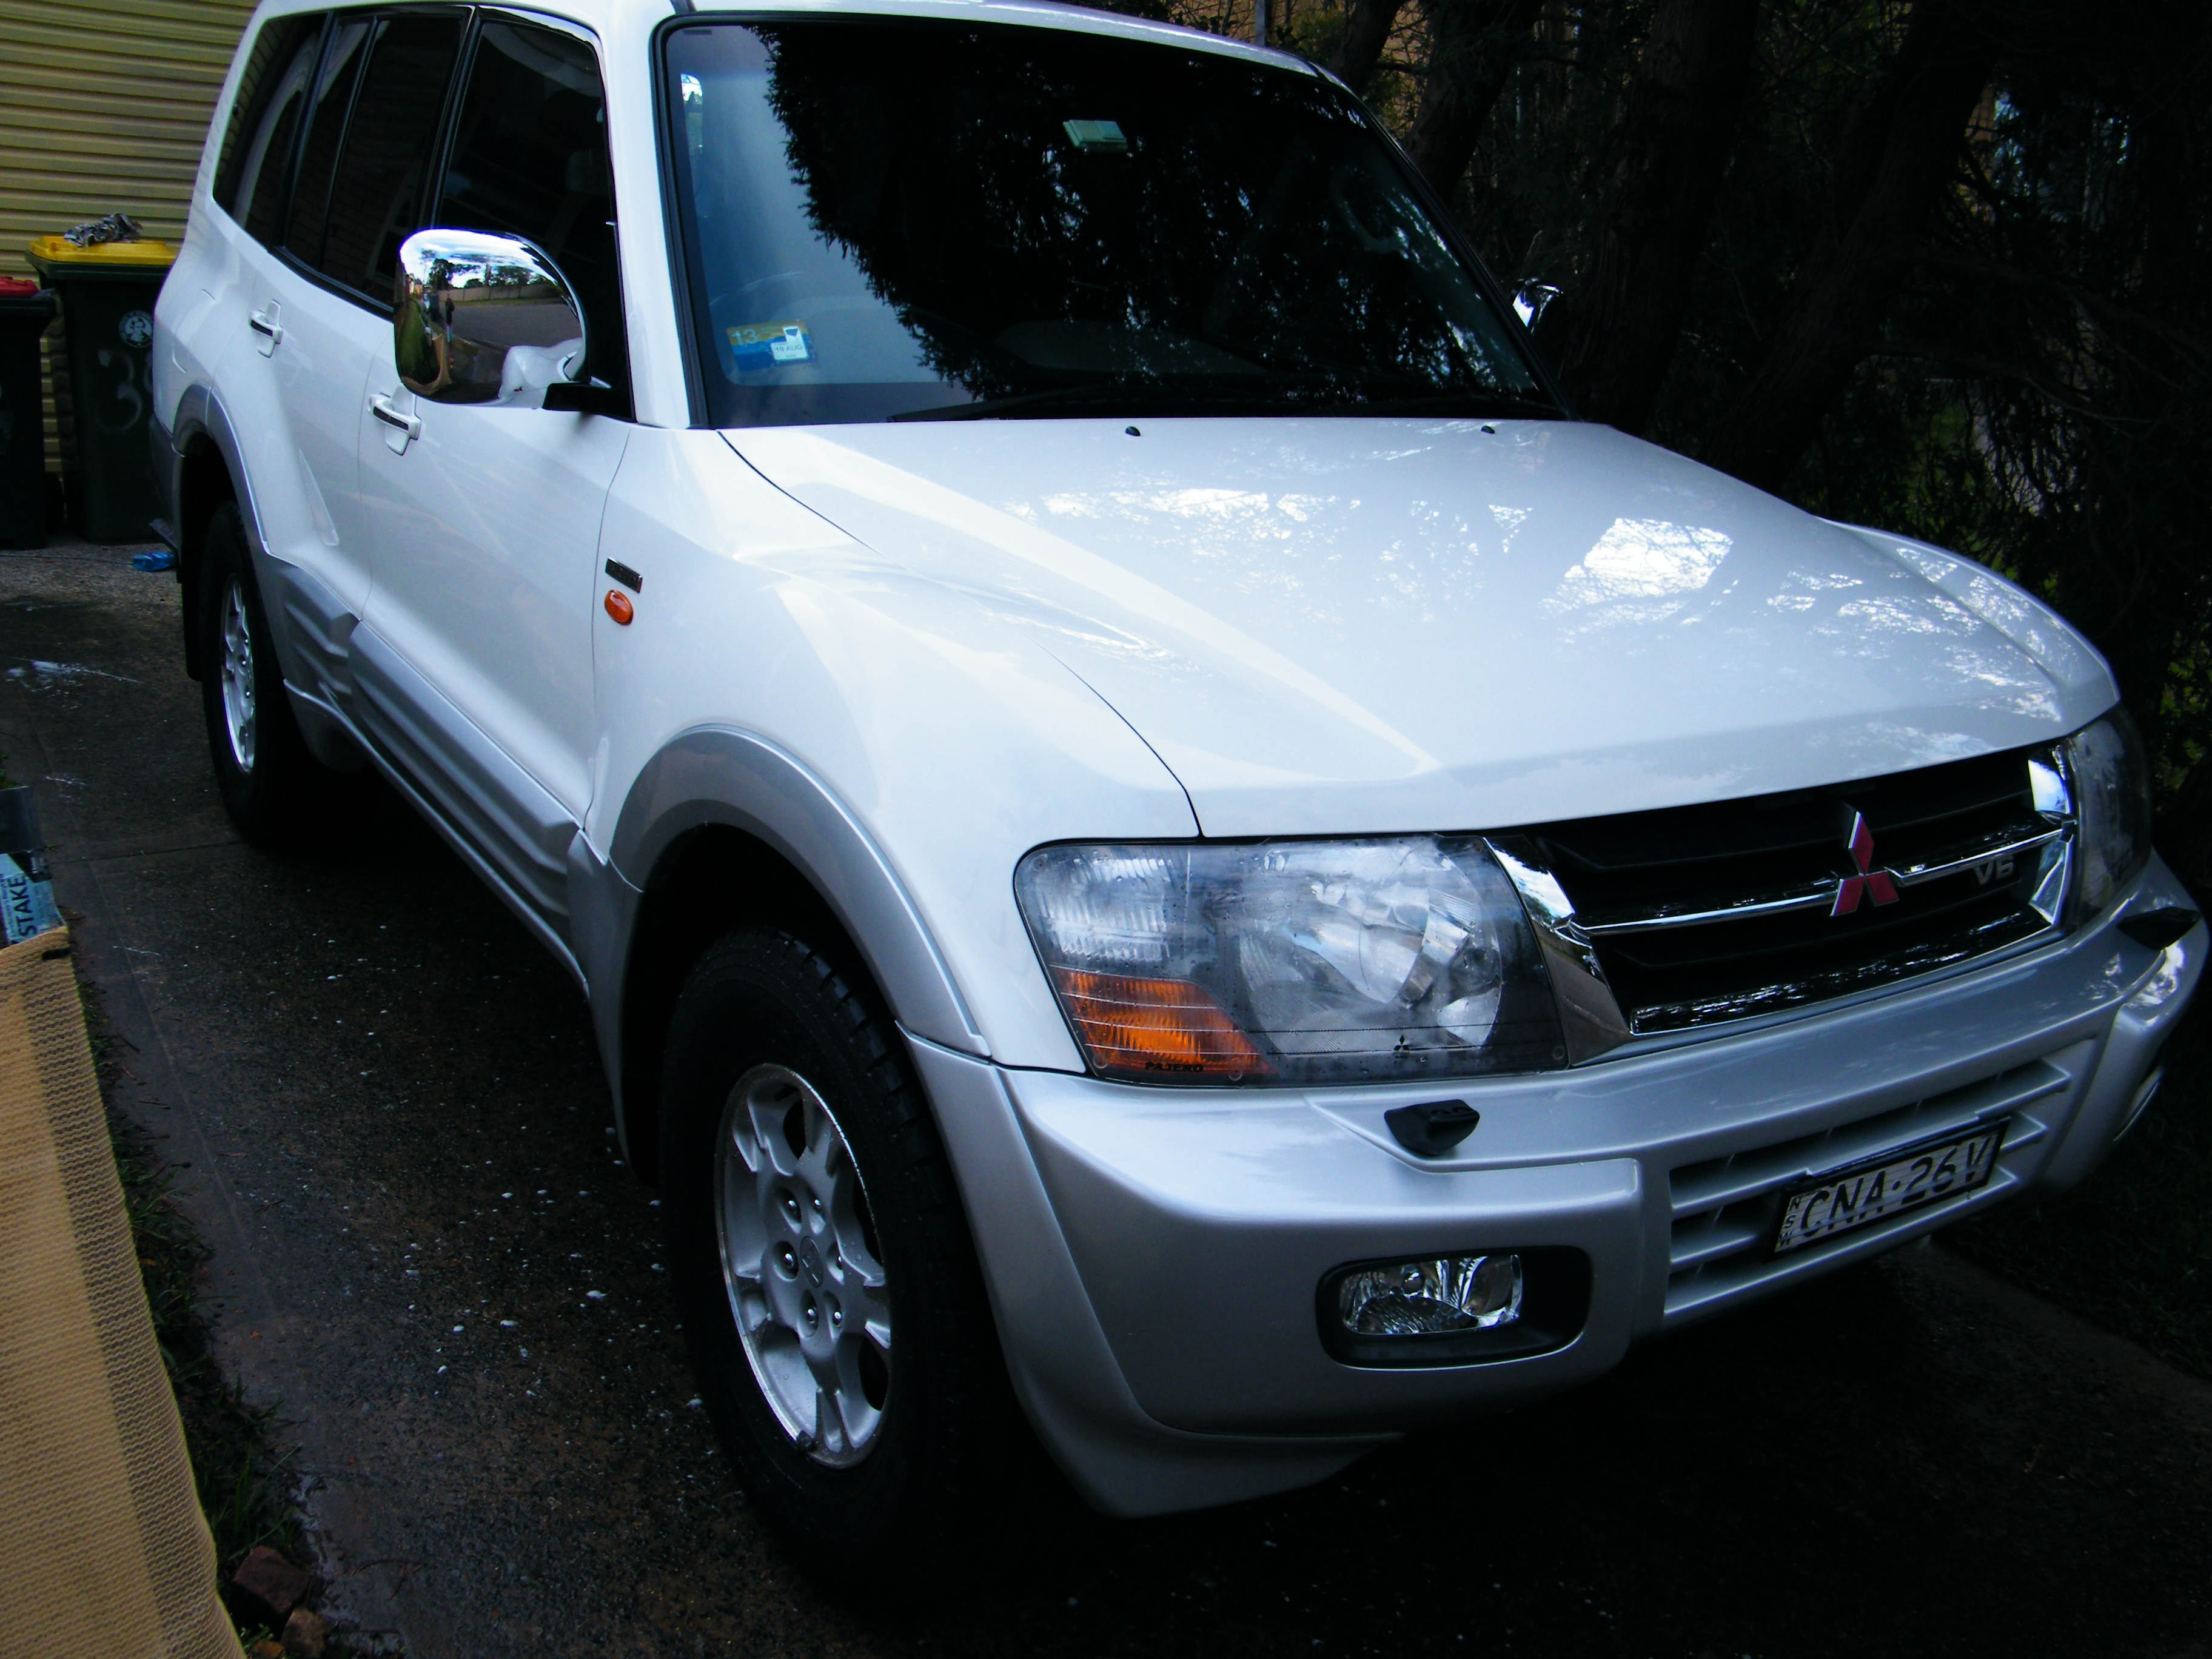 2002 mitsubishi pajero exceed lwb 4x4 nm car sales nsw sydney 2249657. Black Bedroom Furniture Sets. Home Design Ideas